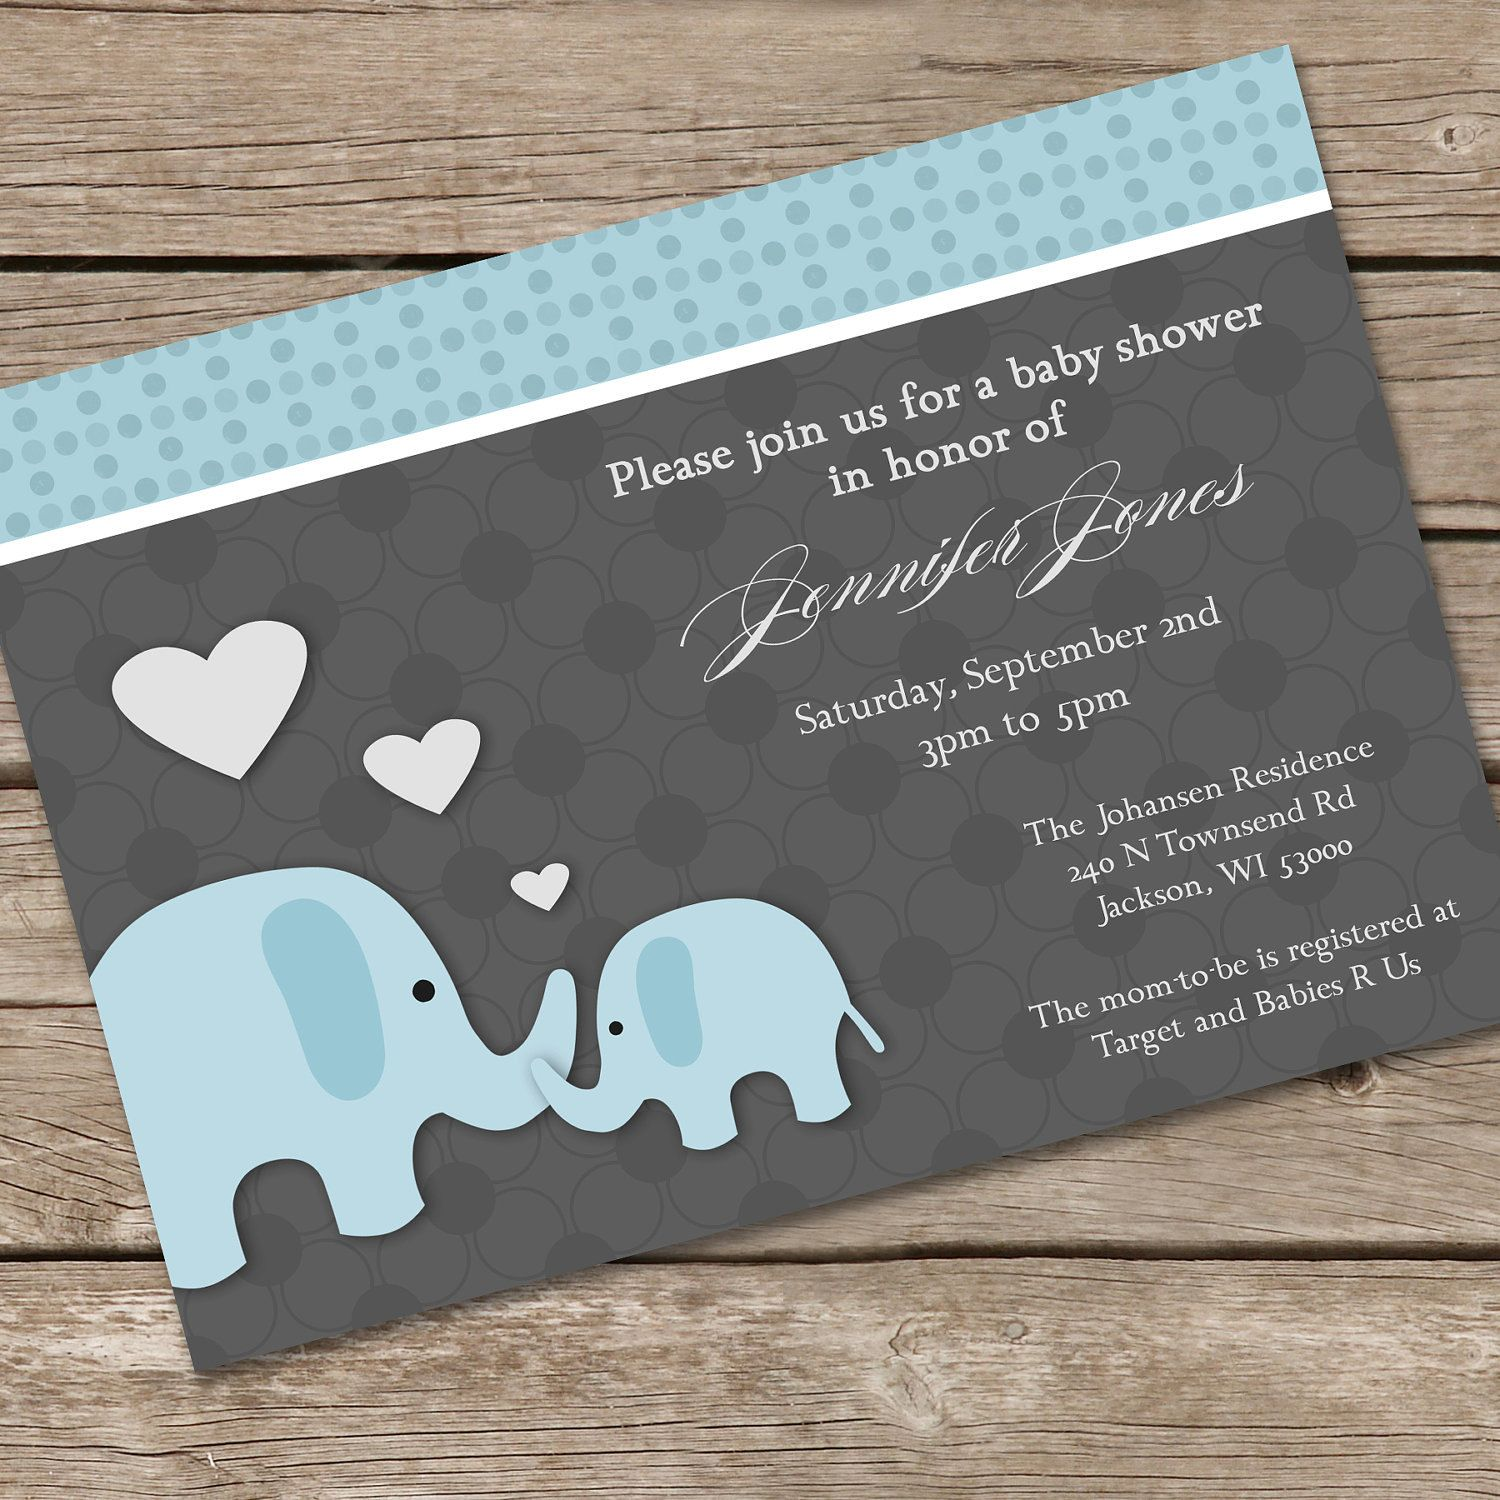 recipe themed bridal shower invitation wording%0A Loving Blue Elephants Baby Shower Invitation DIY Printable  i just like  the elephant shape